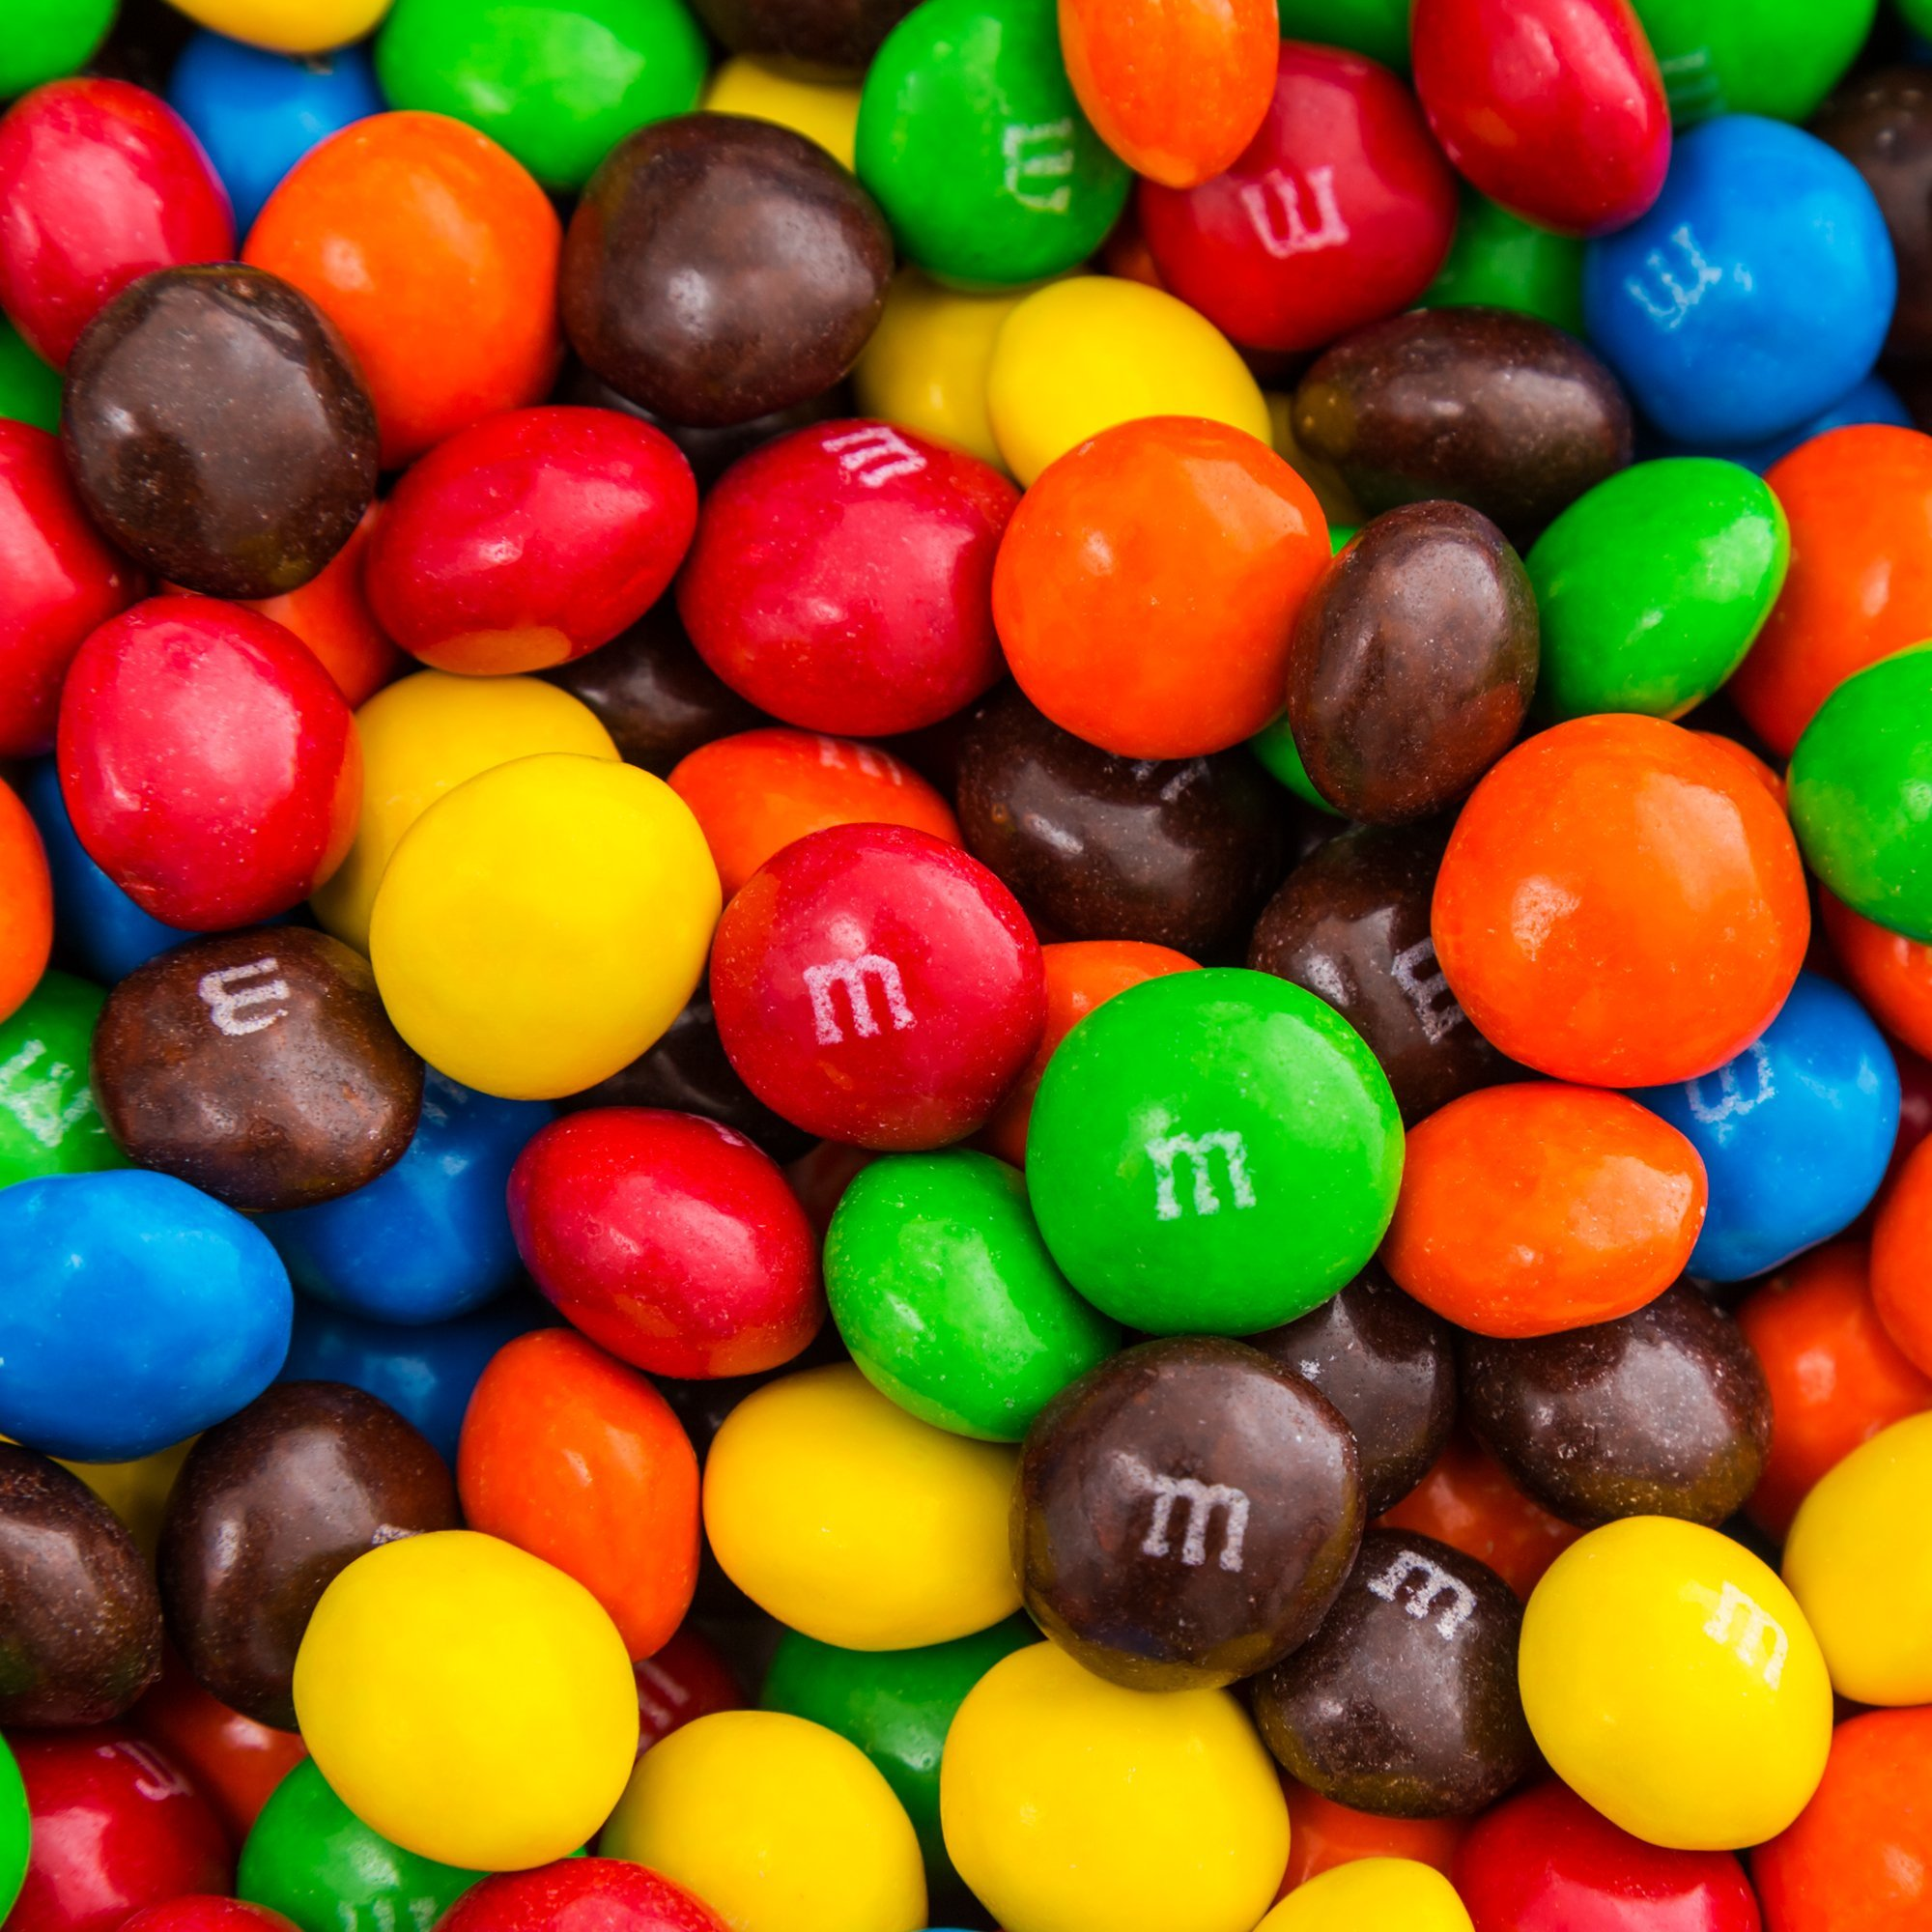 Bulk Peanut Butter M&Ms in Resealable Bomber Bag, Wholesale Peanut Candy Treats (5lb Bag) by Fast Fresh Nuts (Image #4)